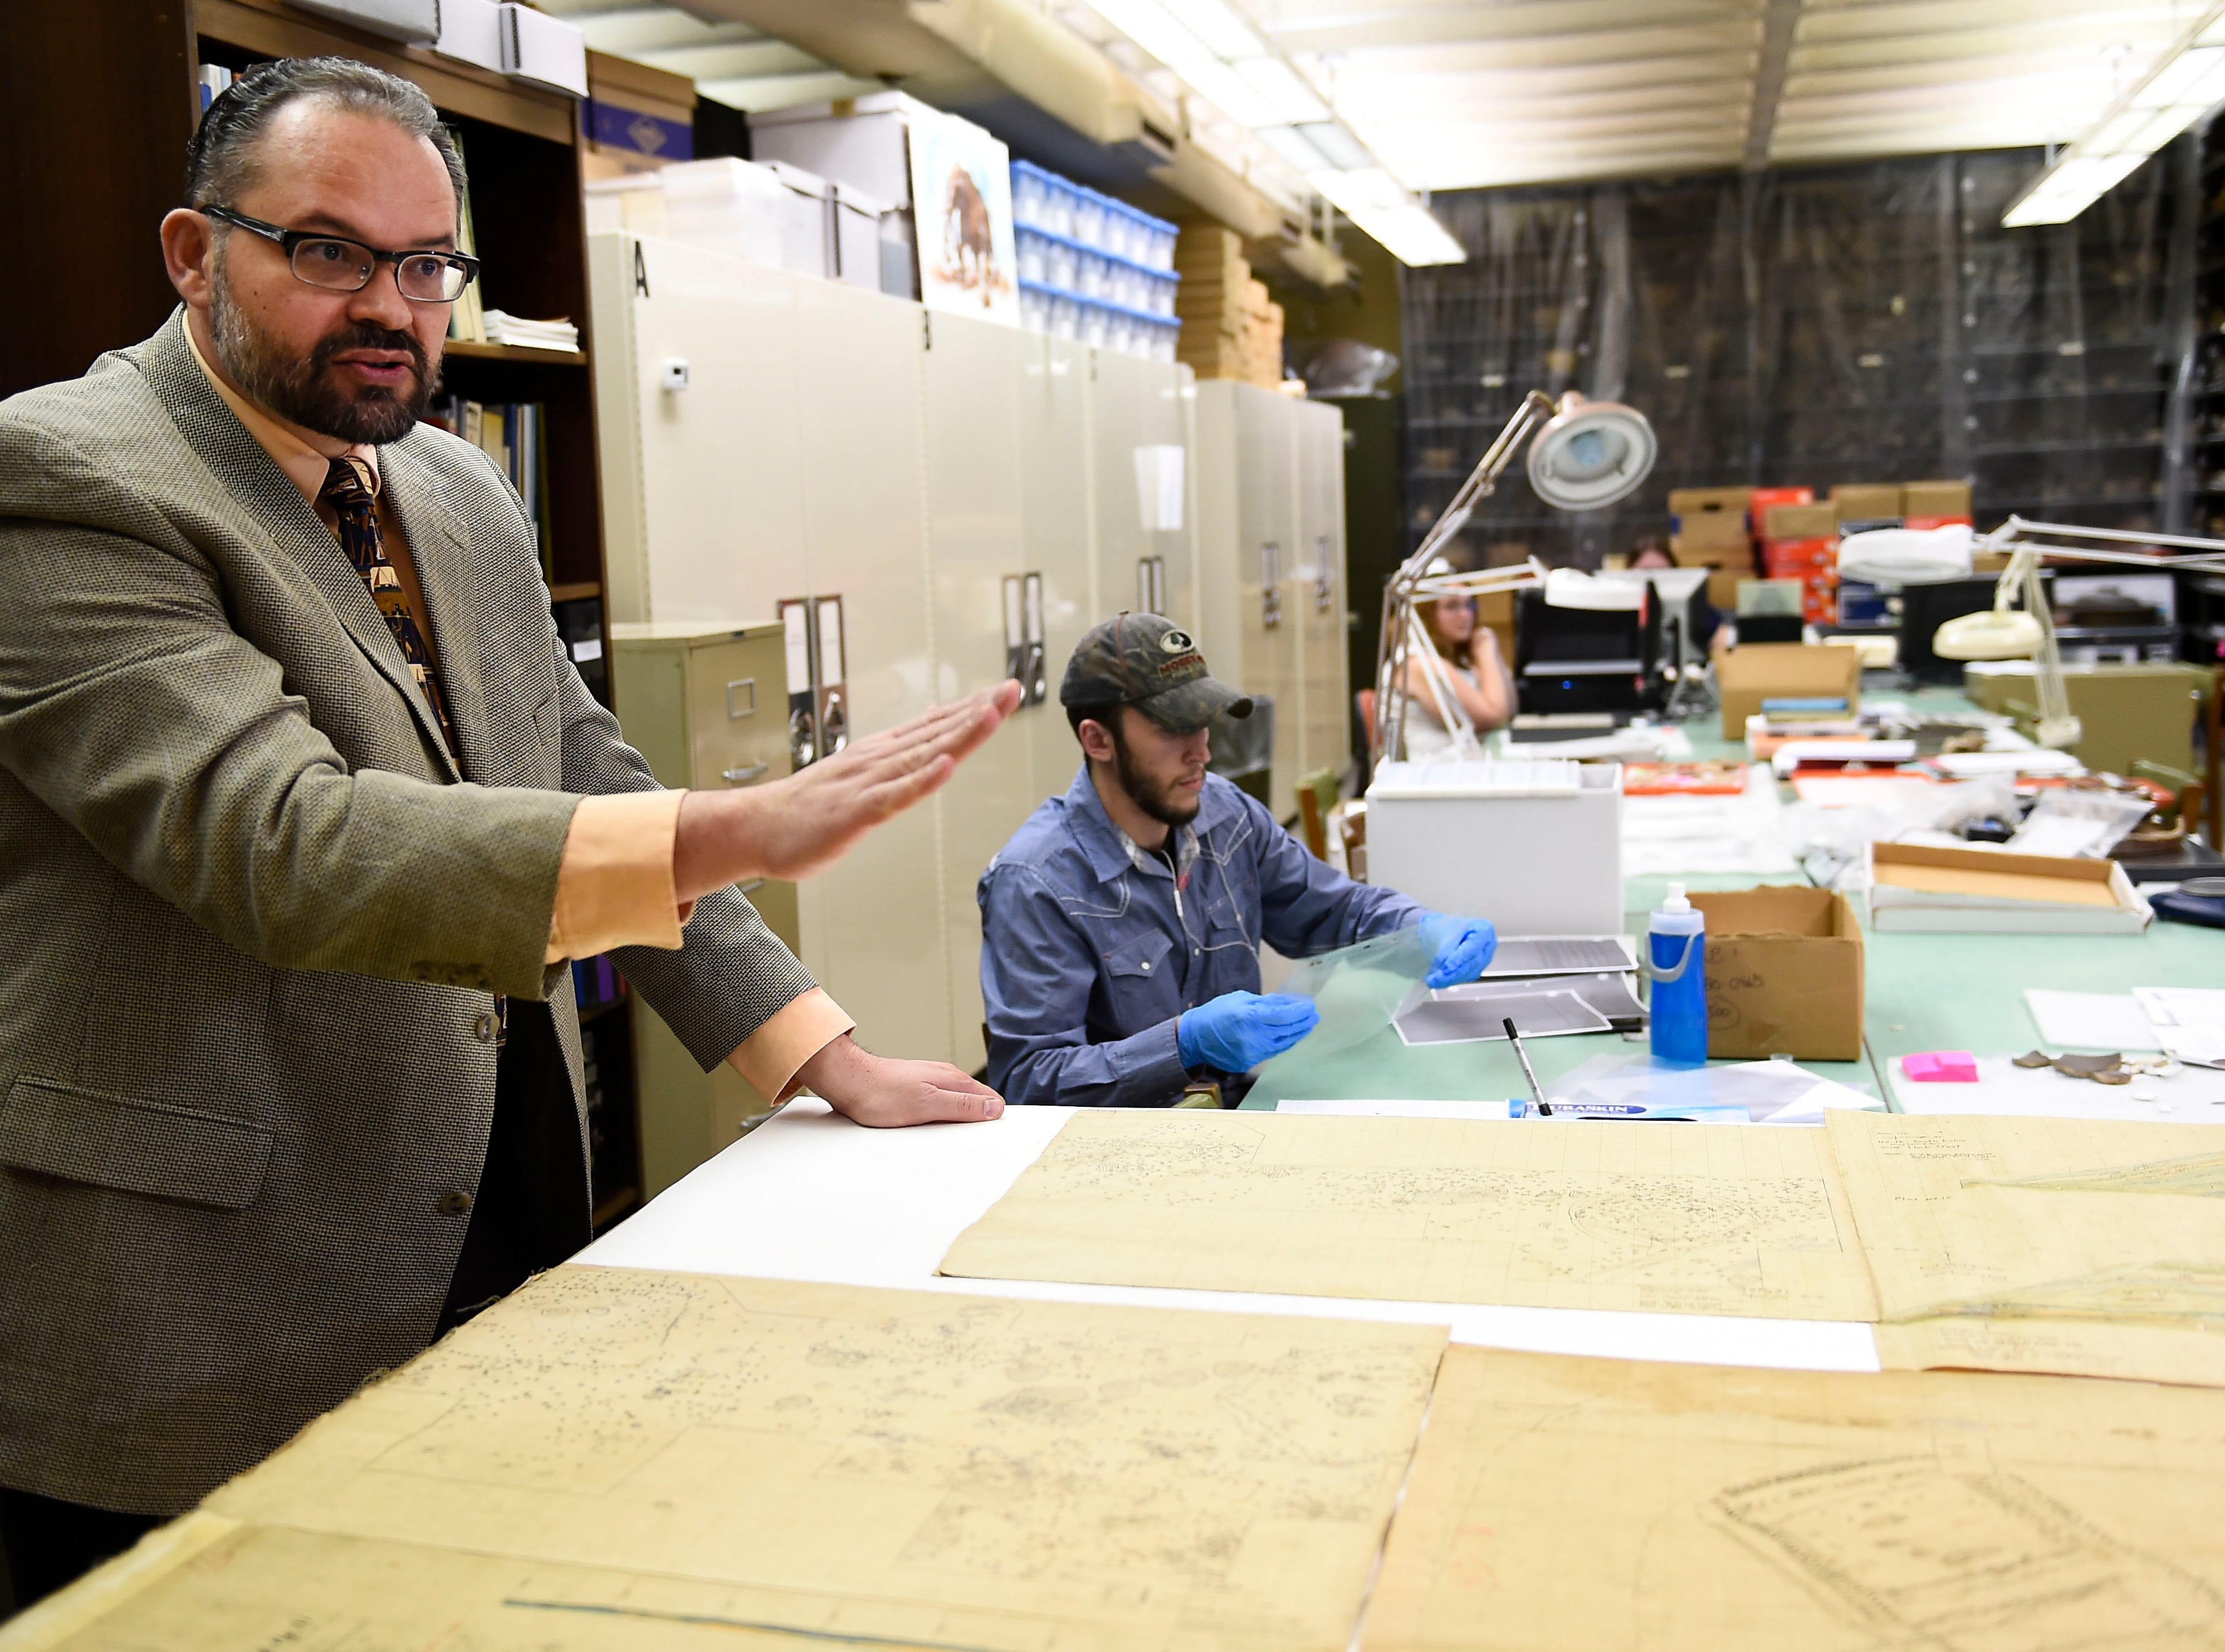 McClung Museum curator Tim Baumann, left, describes maps drawn in the 1930's of the Hiwassee Island archaeological site on Thursday, Nov. 20, 2014 in Knoxville, TN. The McClung Museum, in partnership with the Tennessee Valley Authority, are working to preserve artifacts excavated during the creation of many of TVA's reservoirs.